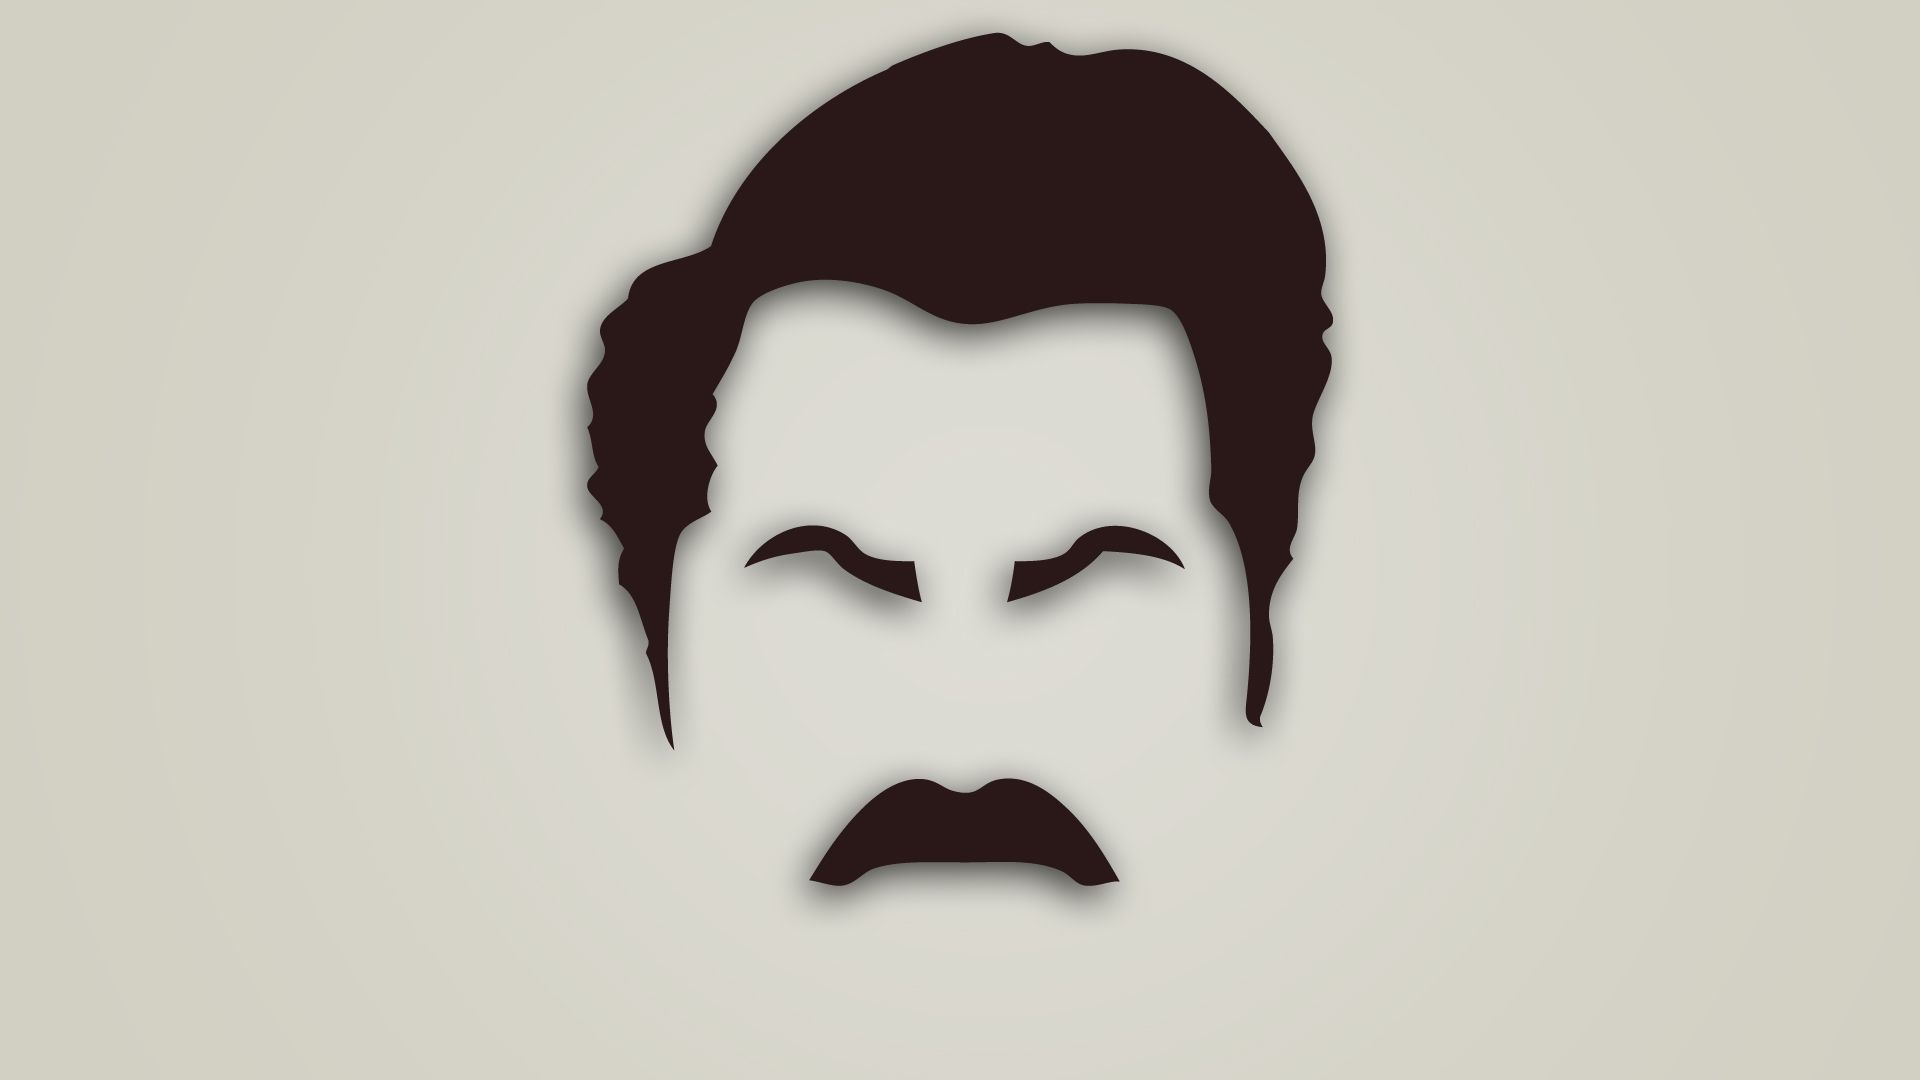 Ron Swanson Parks And Recreation Hd Wallpapers Image Hd